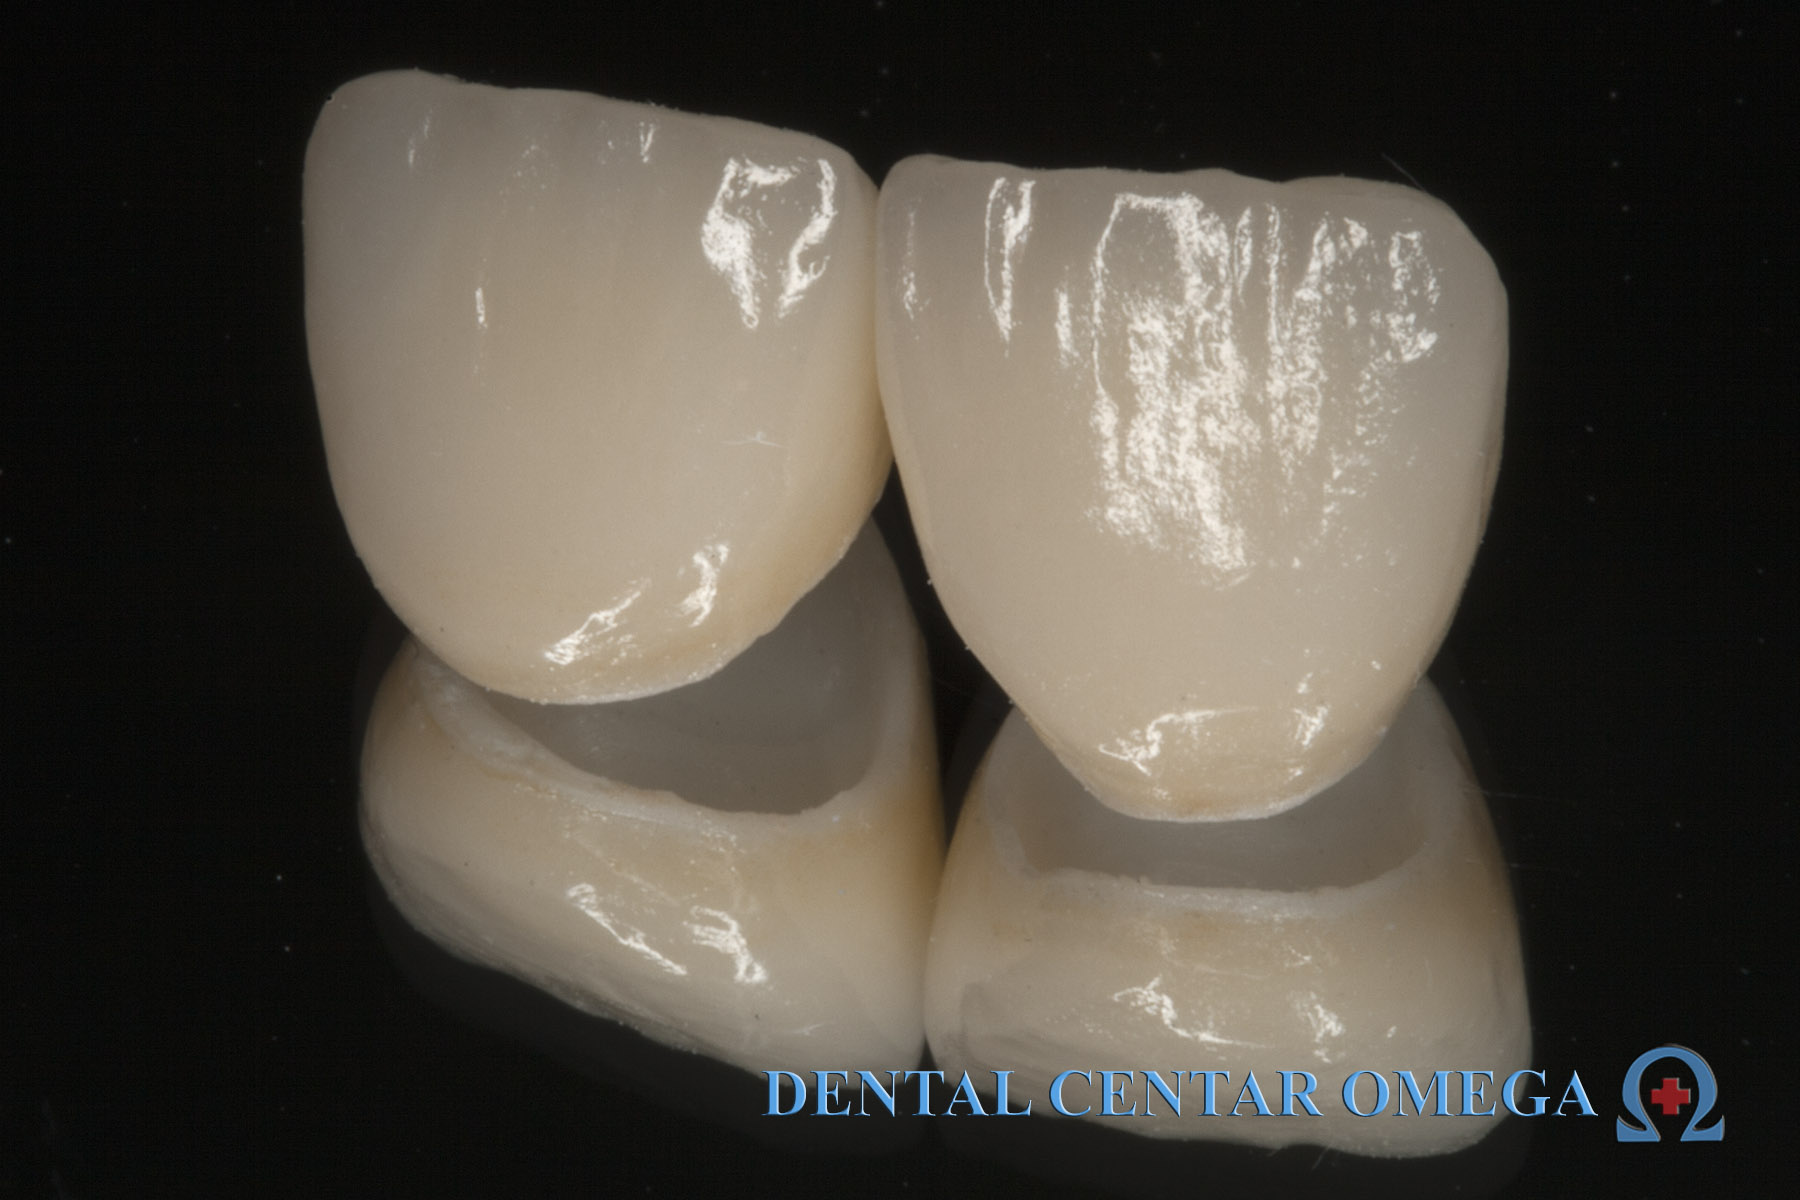 Prosthetics Dental Centar Omega